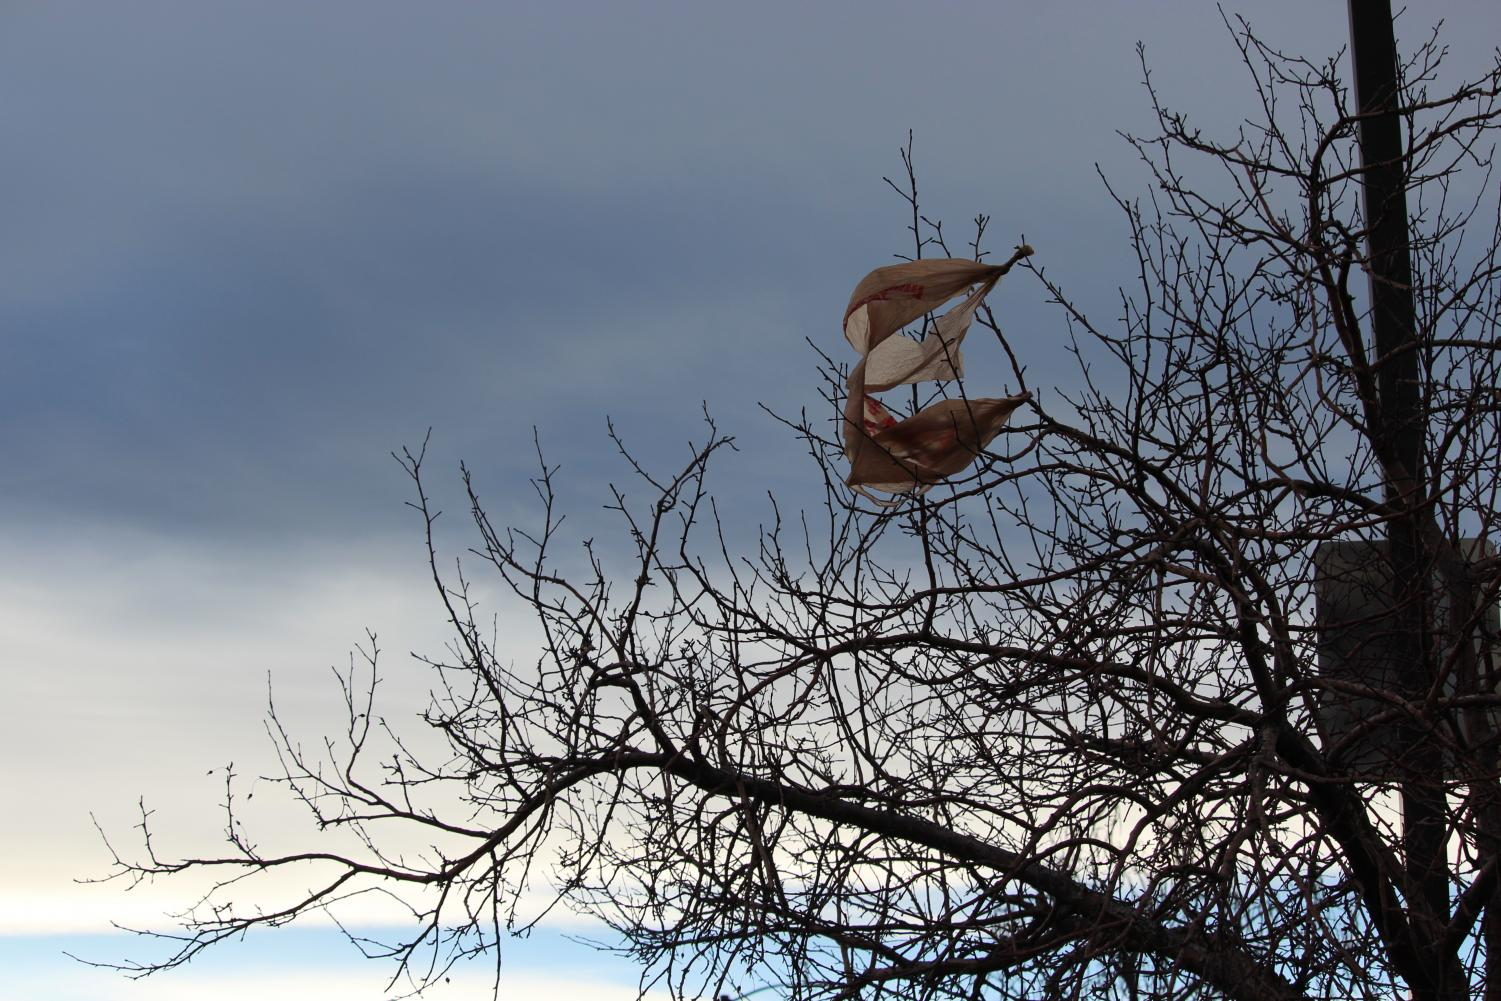 Plastic bags, tangled in a tree, twist in the wind in Highlands Ranch, Colo. on Jan. 28, 2018. House Bill 1054 states that plastic shopping bags